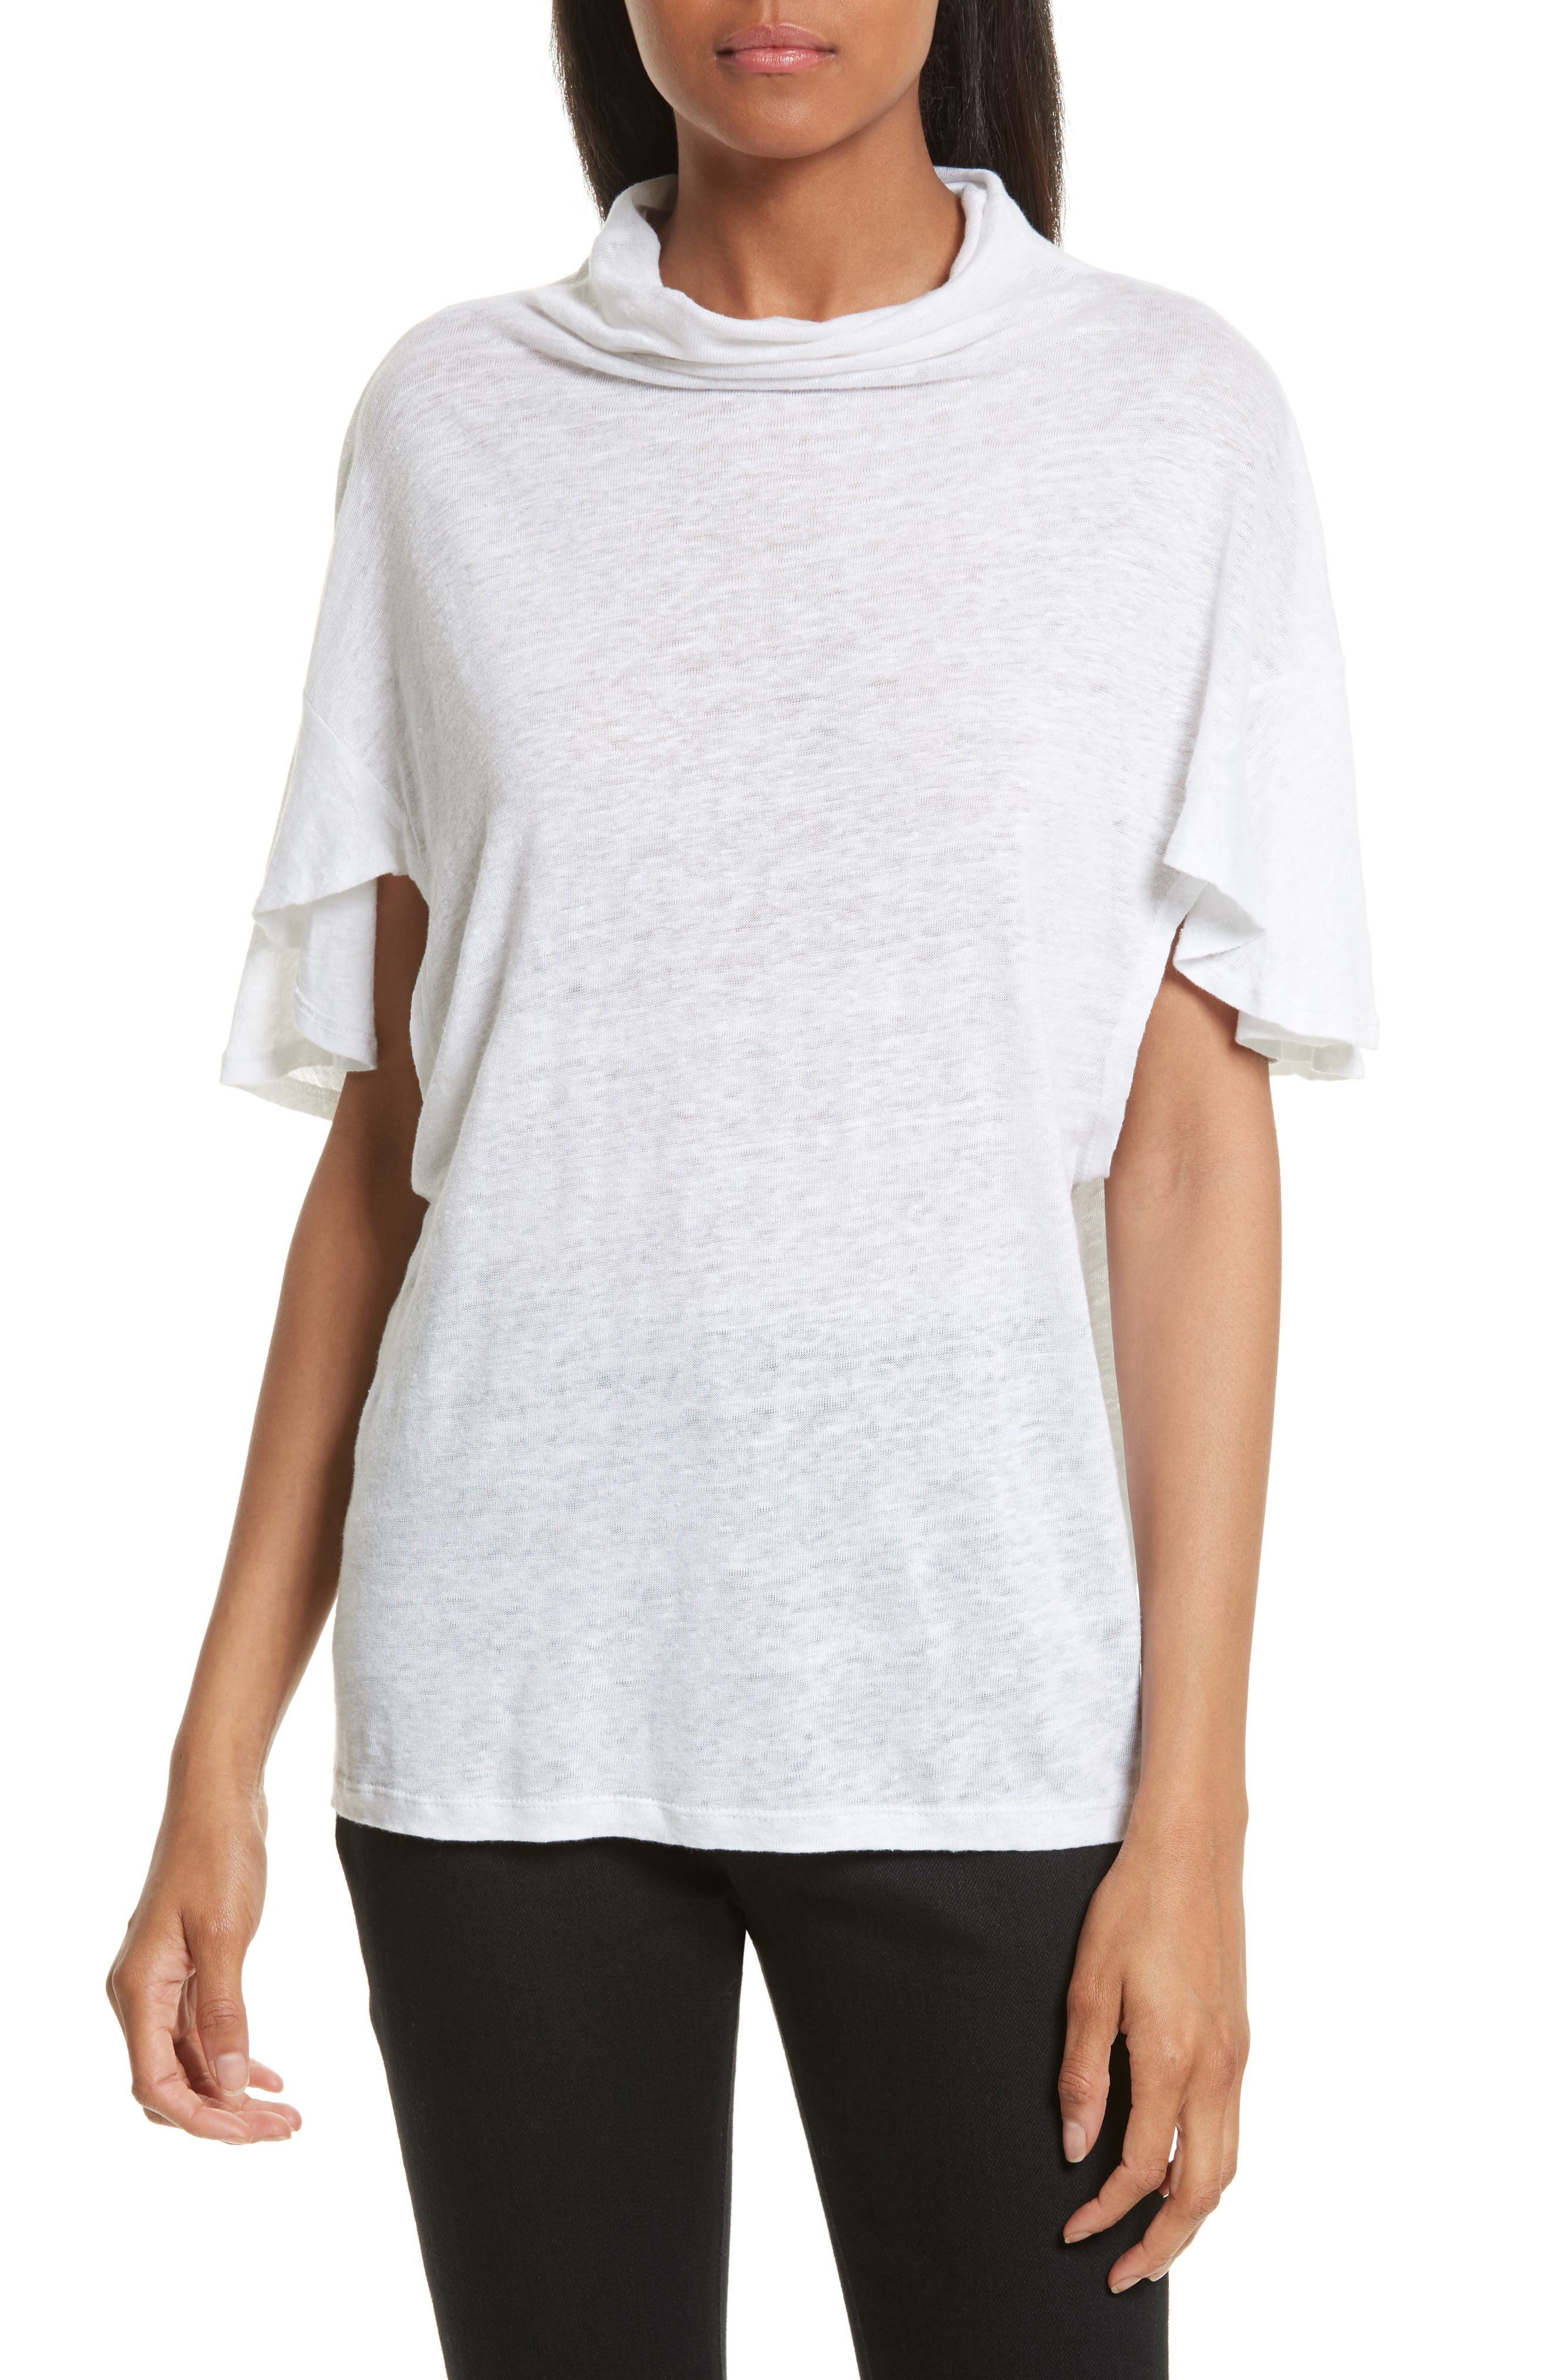 Ermont Linen Tee,                         Main,                         color, White